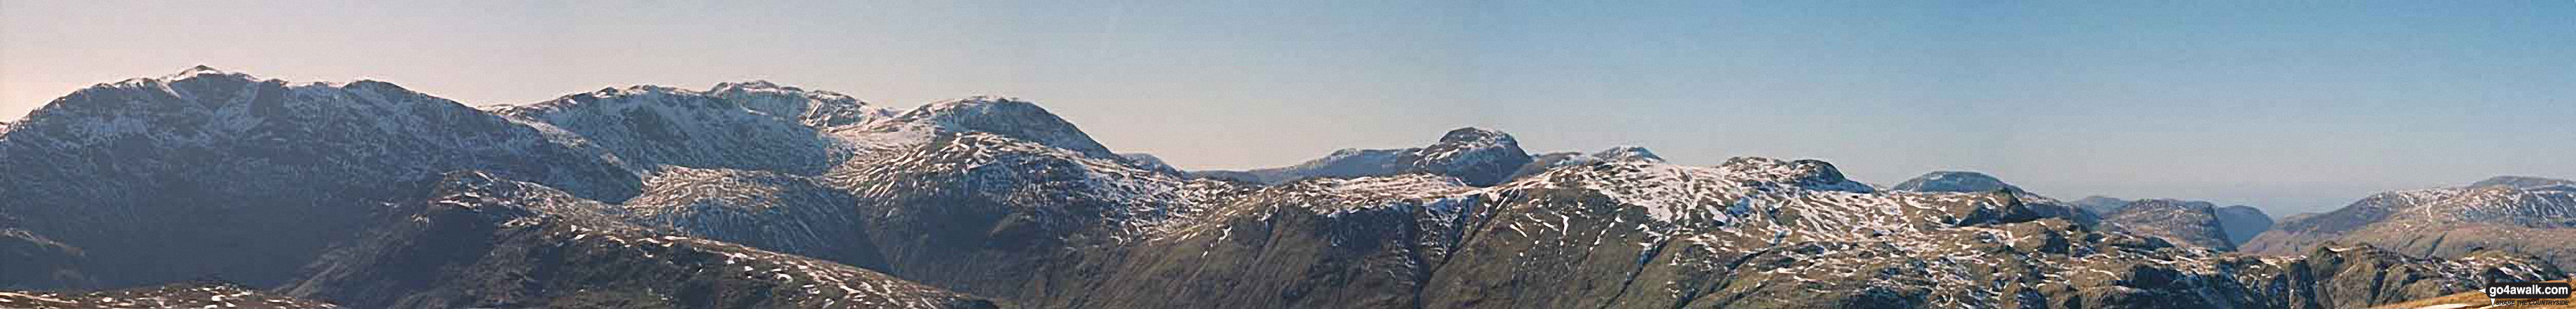 Panoramic Walk Photo: Bowfell, Esk Pike and (the end of) The Scafell Massif from Langdale The Southern Fells The Lake District National Park Cumbria England by Robert Withers (2)